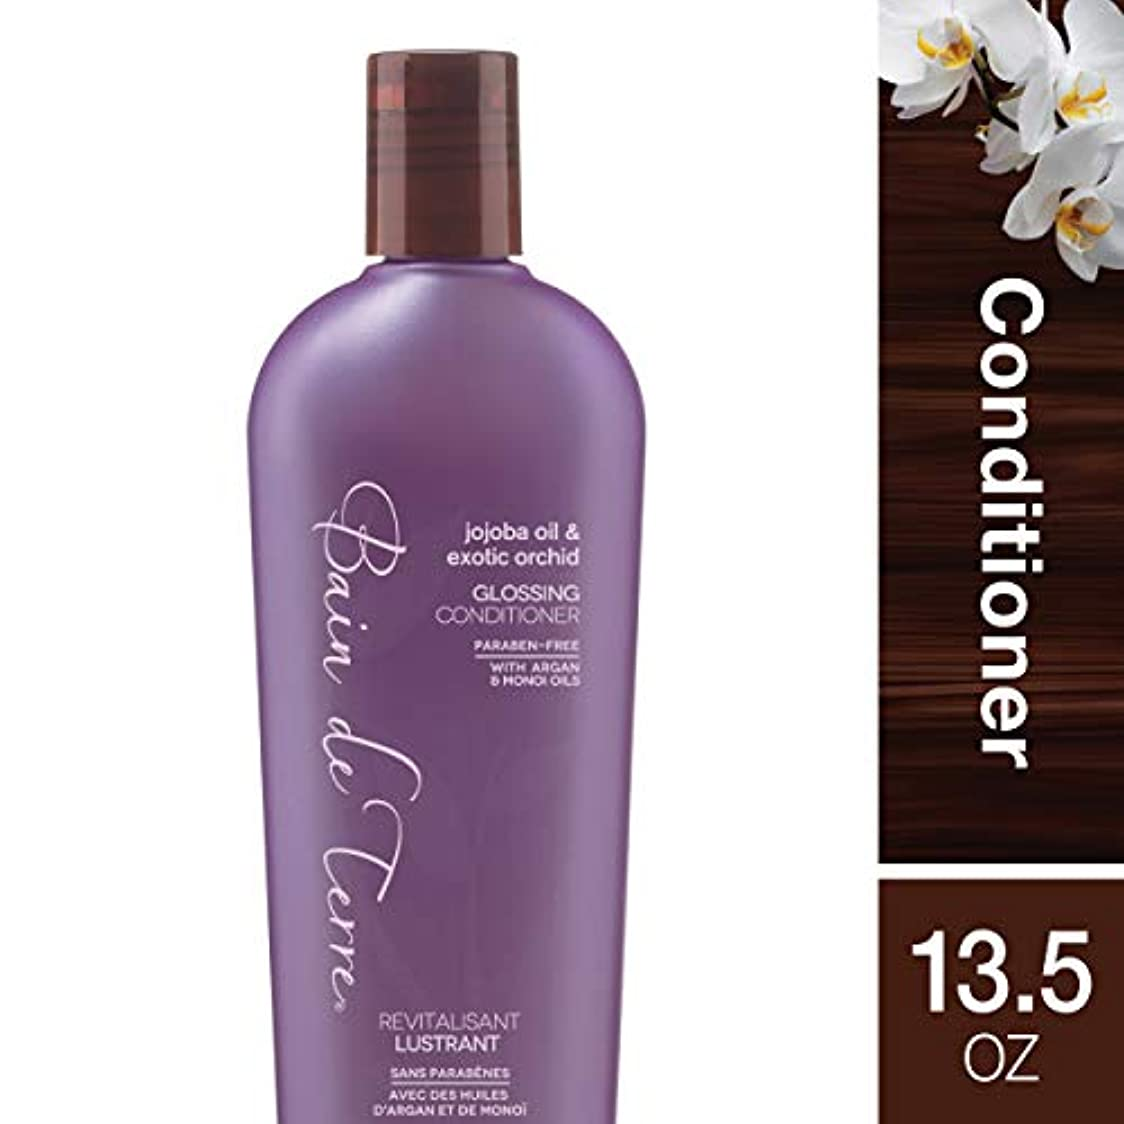 枢機卿ディスパッチ行列Bain De Terre Jojoba Oil Exotic Orchid Glossing Conditioner - 13.5 oz